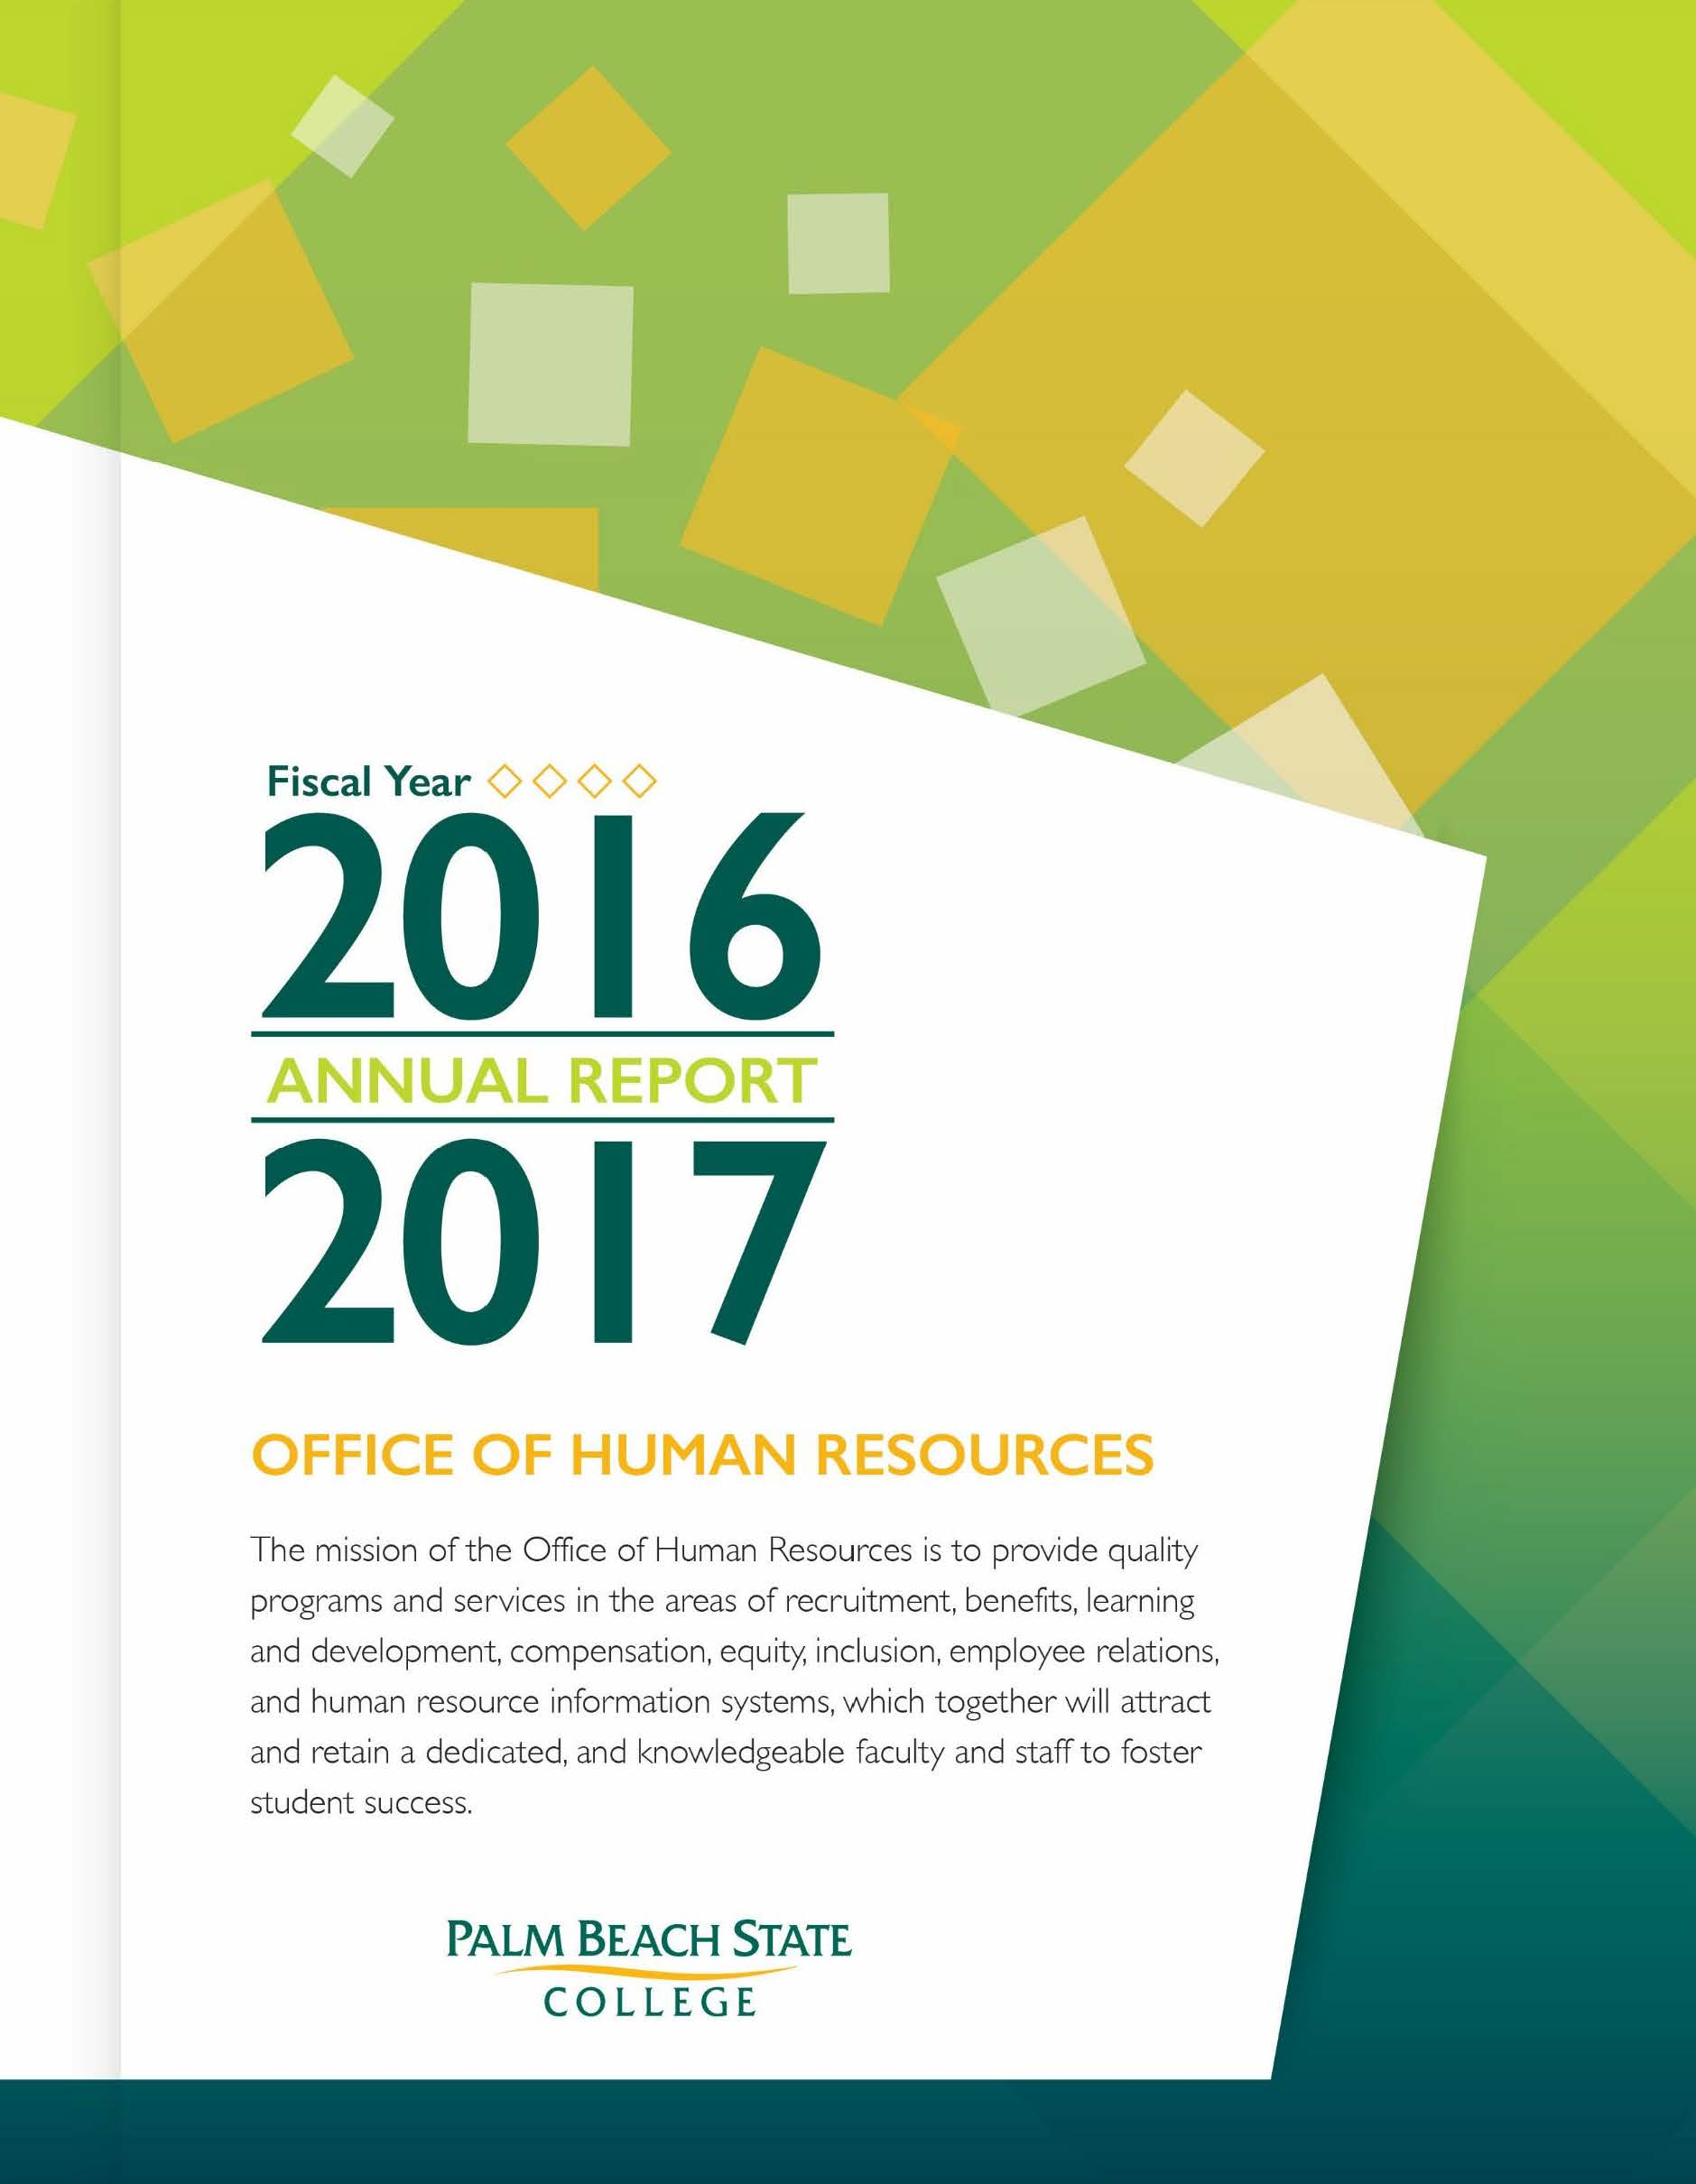 FY 2016/2017 Annual Report